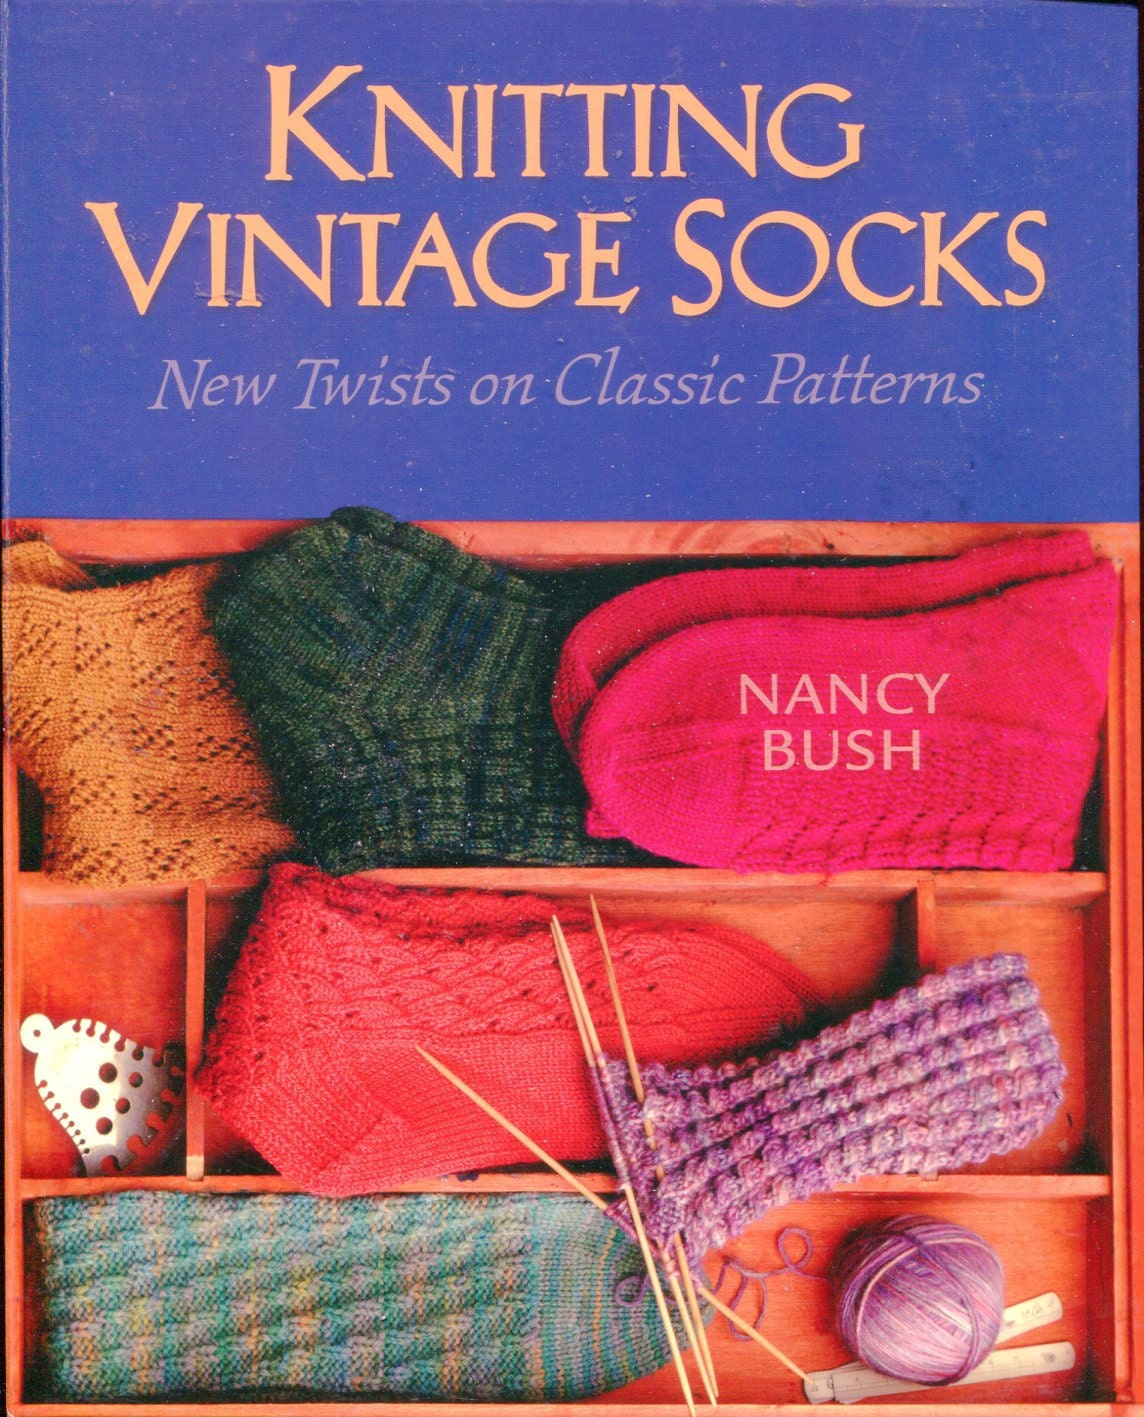 Knitting Nancy Vintage : Knitting vintage socks book new twists on classic patterns